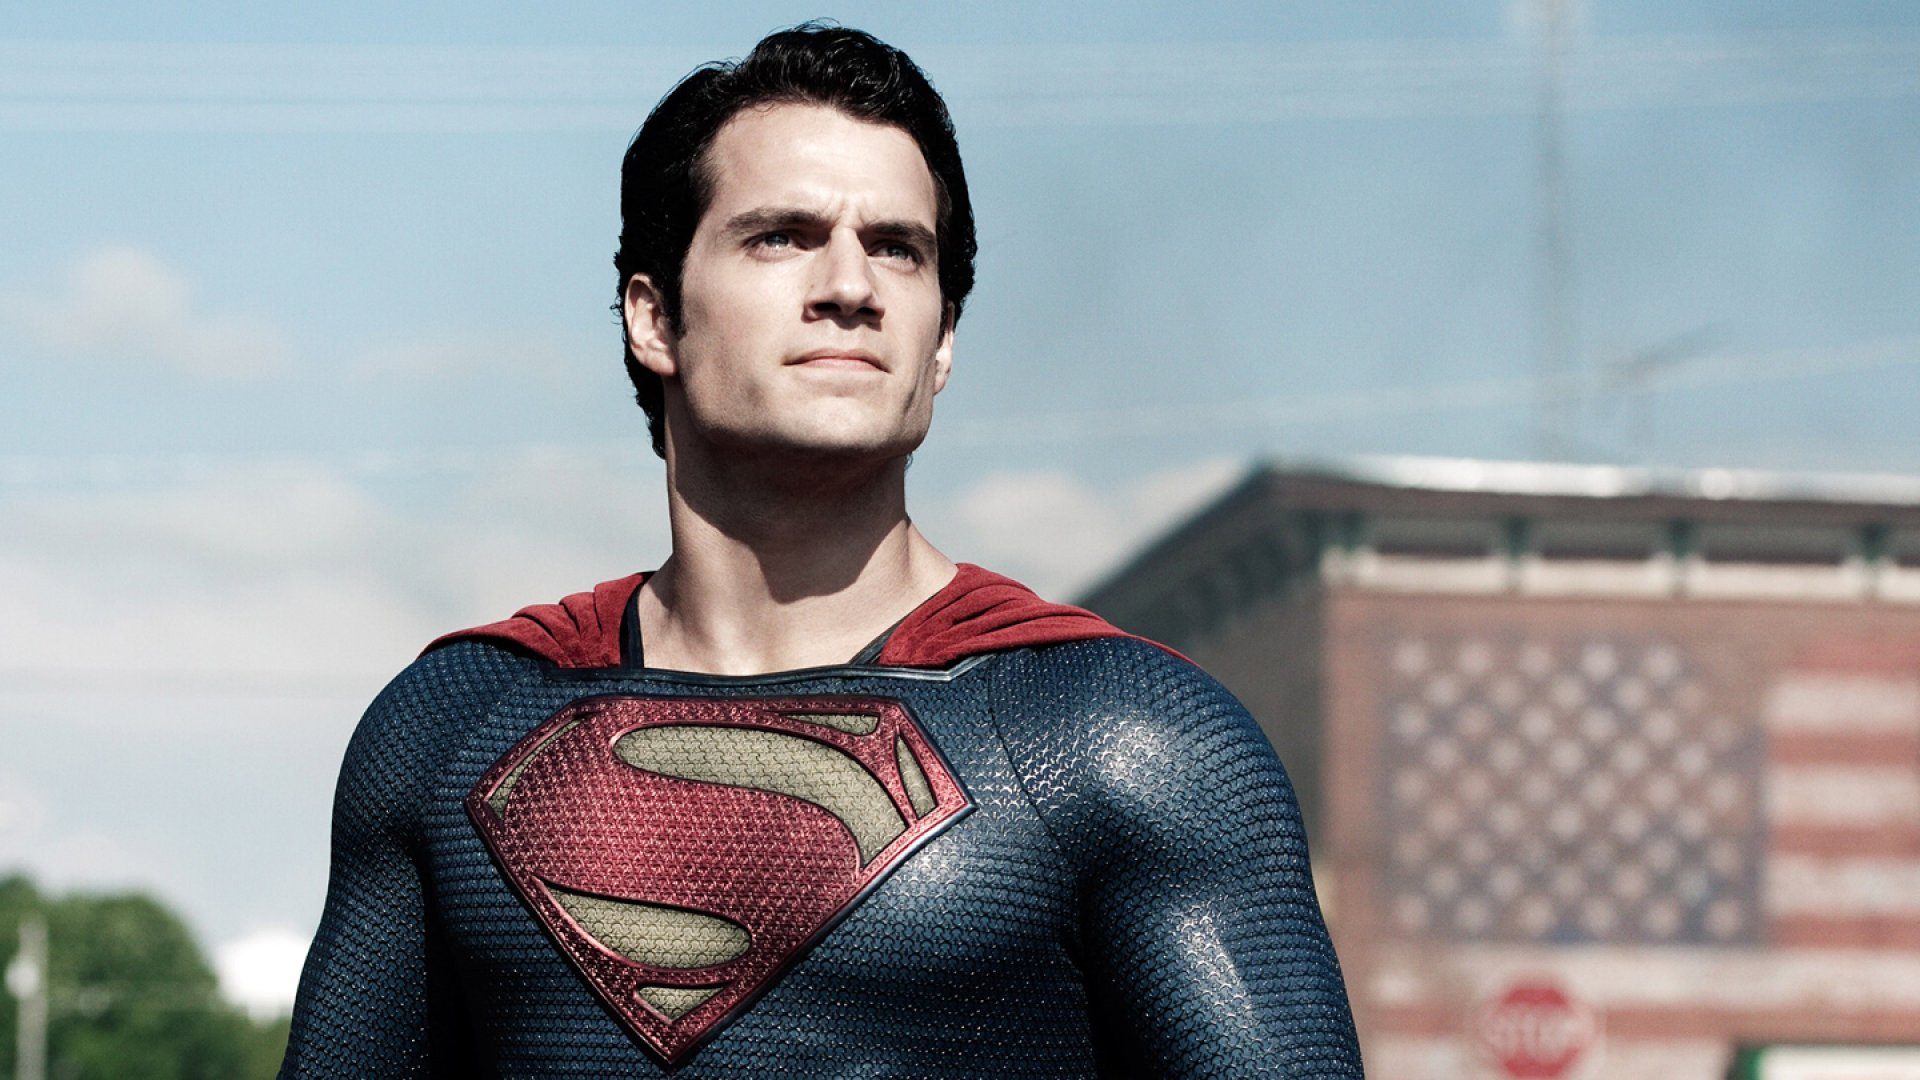 Henry Cavill, as Superman